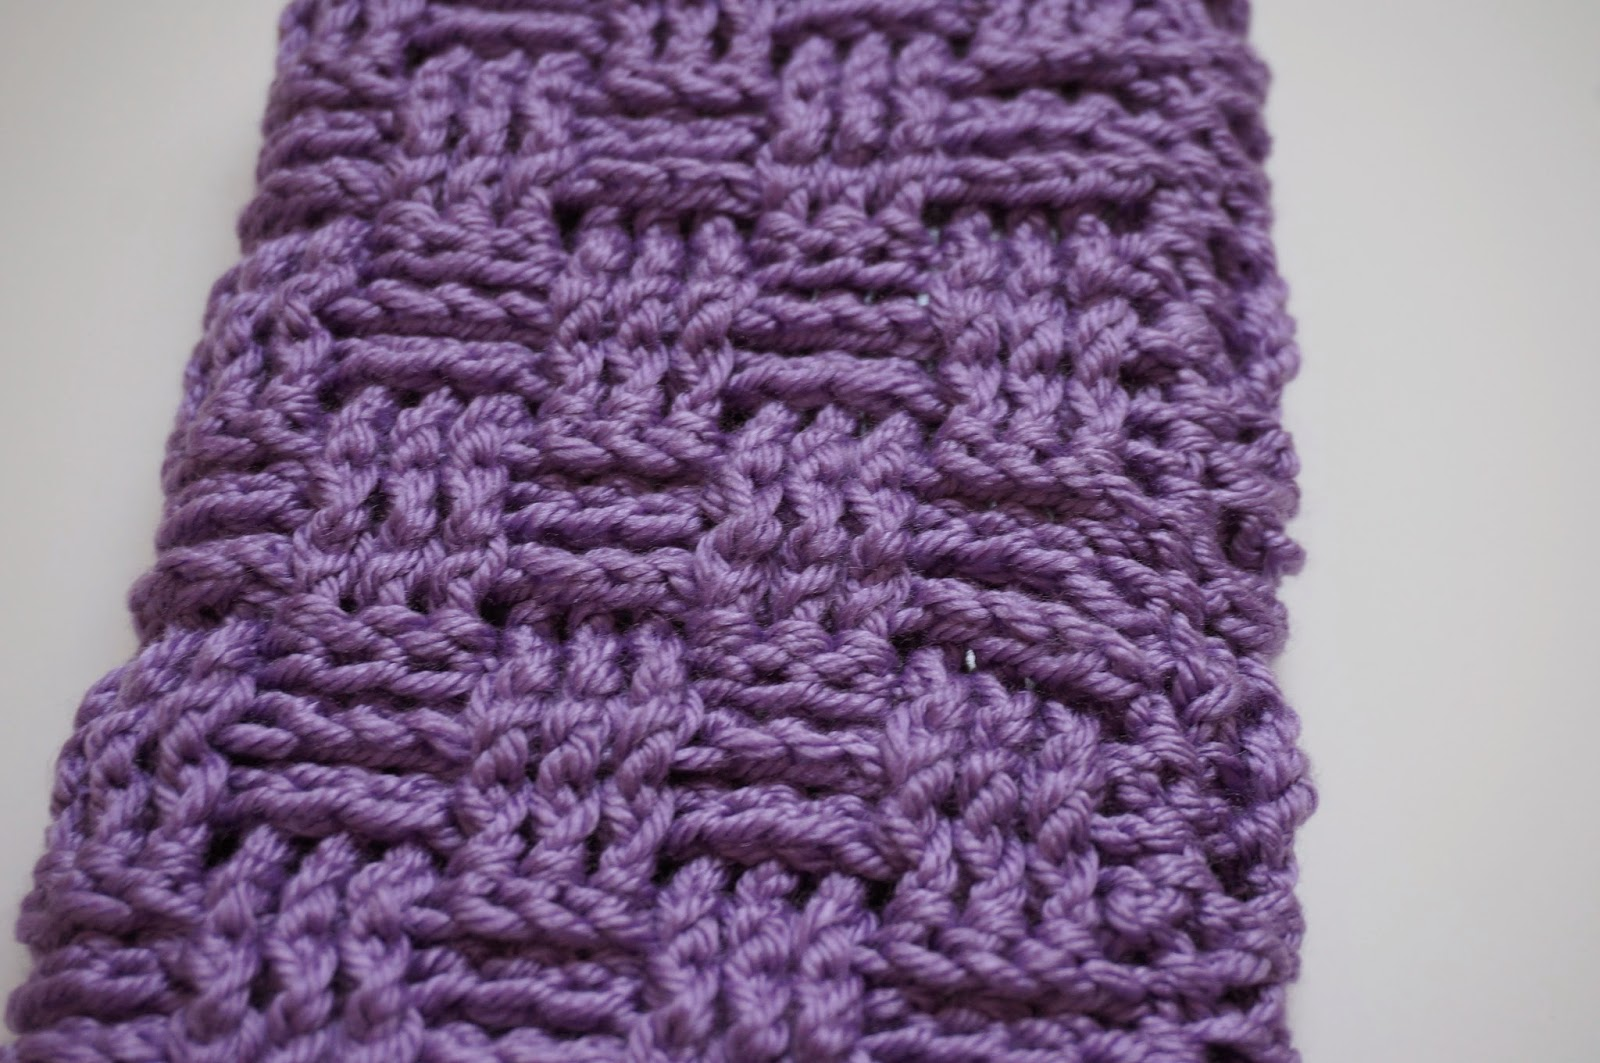 How Long Does It Take To Weave A Basket : Basket weave crochet stitch